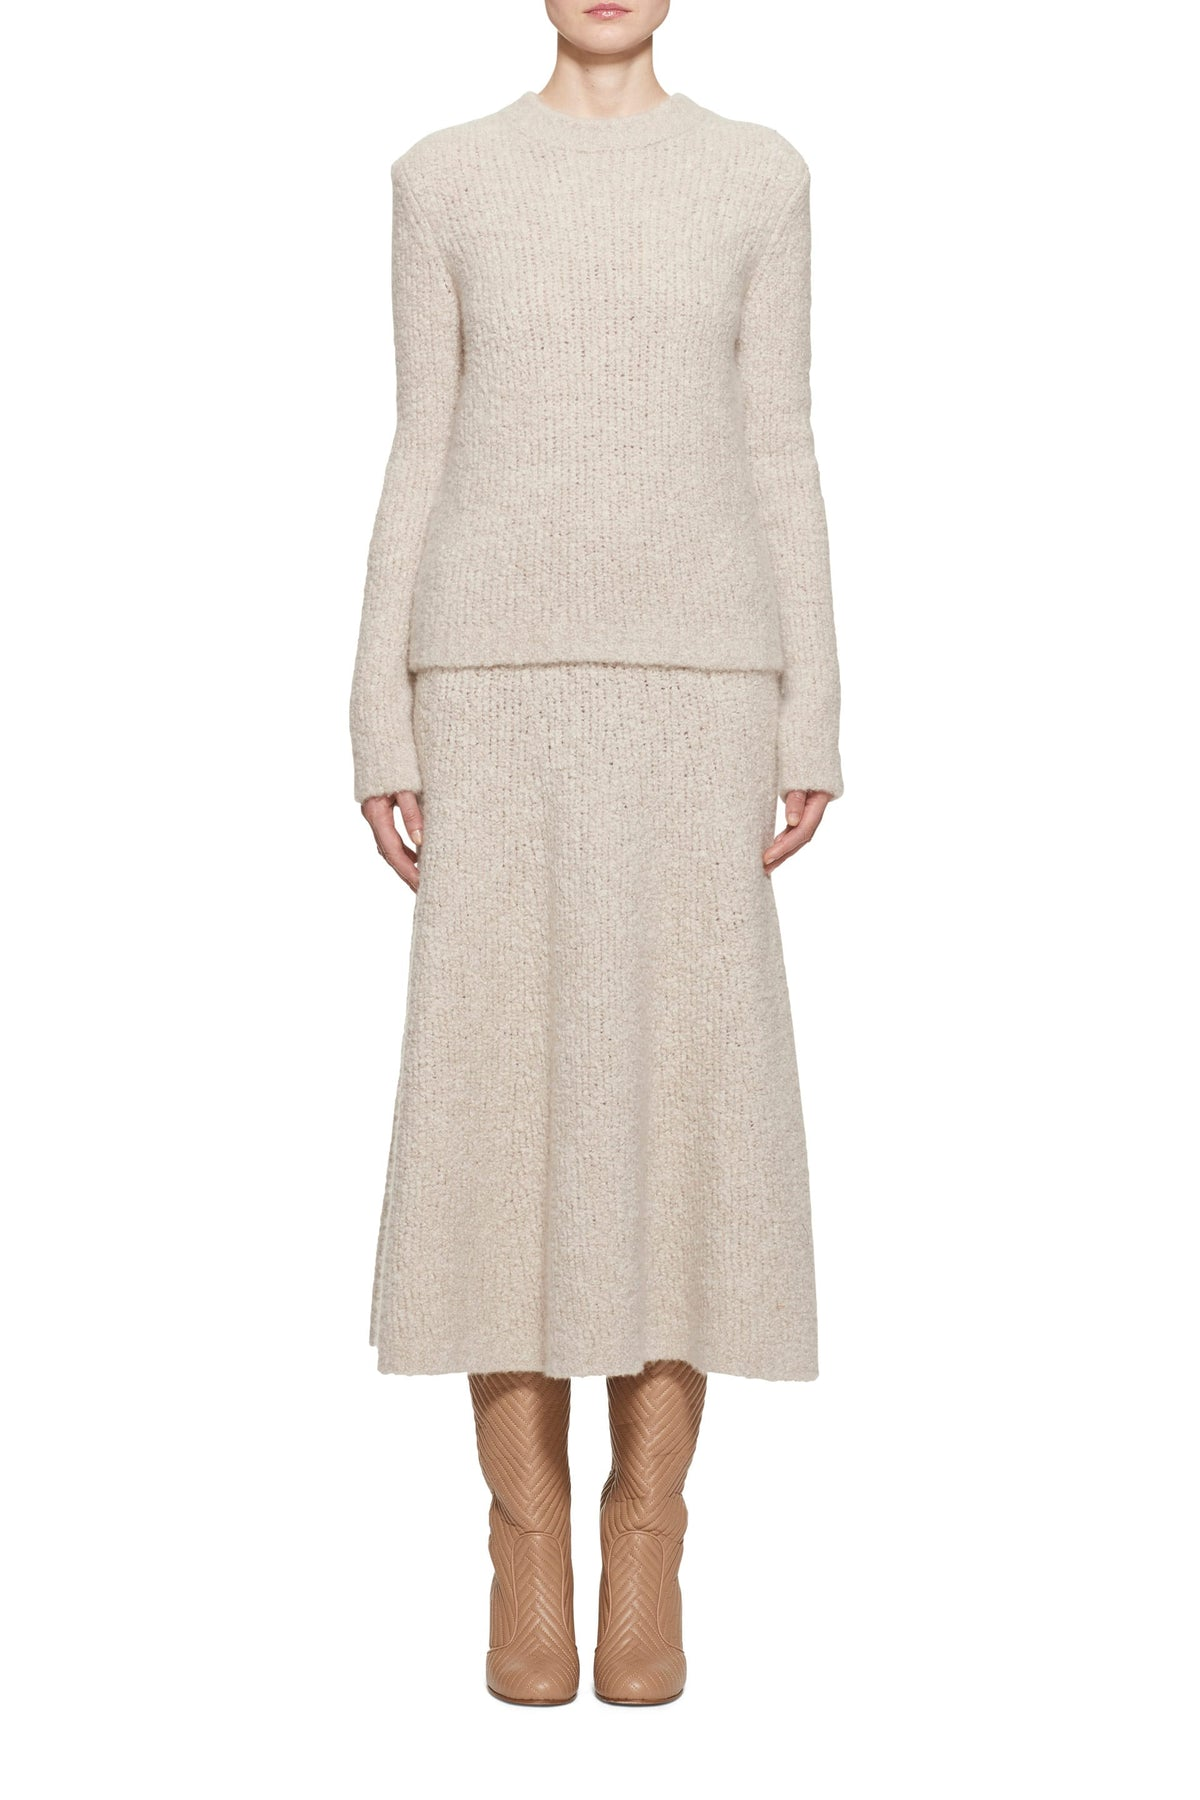 Philippe Cashmere Boucle Sweater